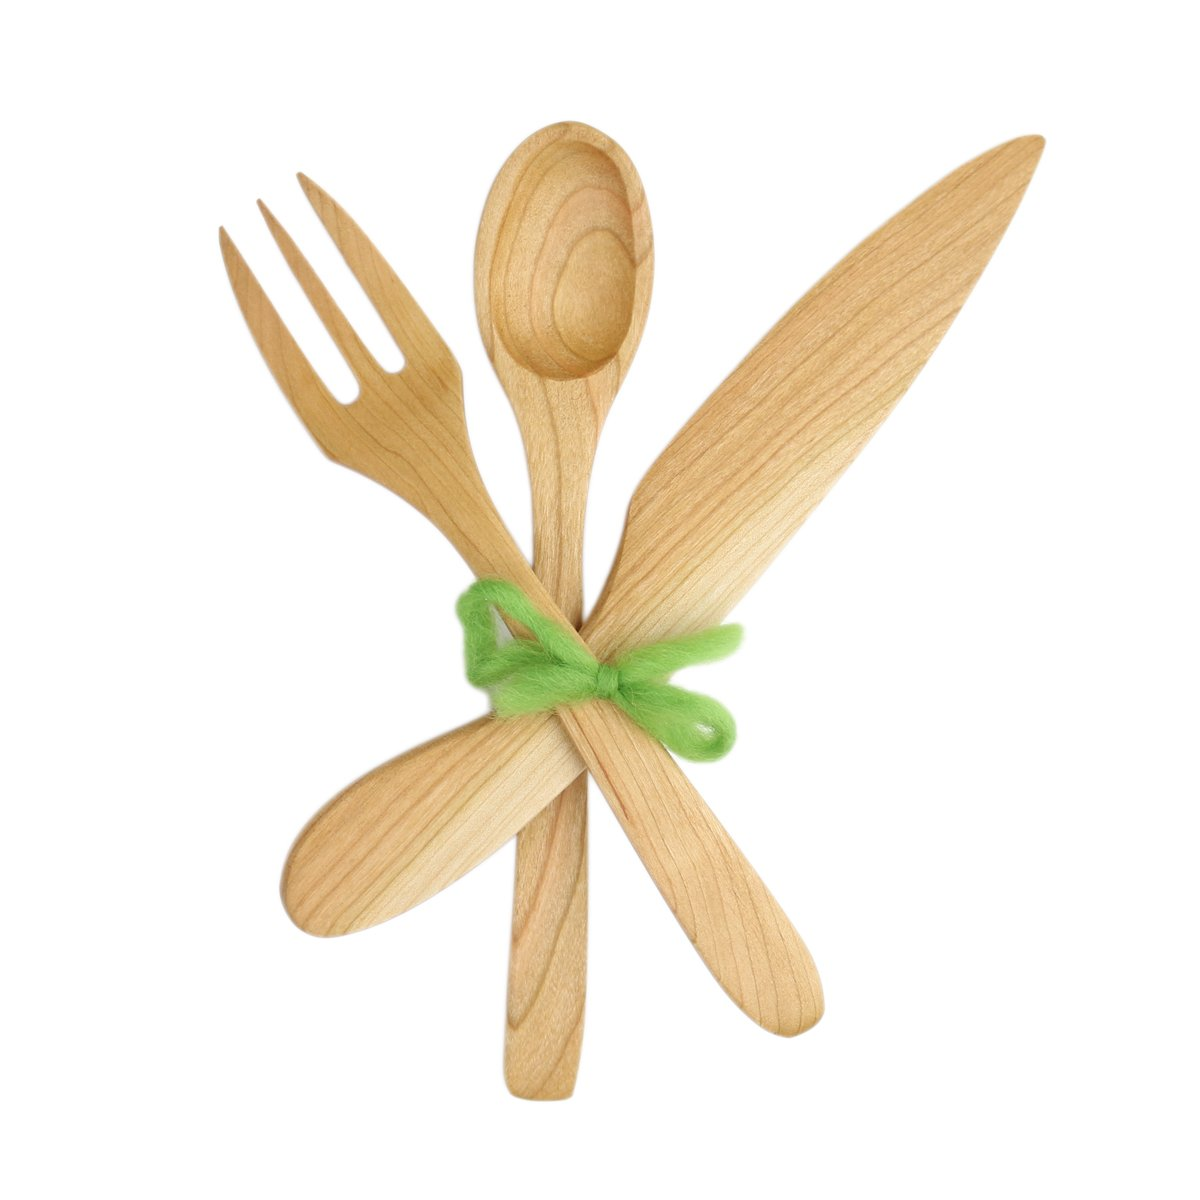 Adult Cherry Wood Flatware: Spoon, Fork, Knife (Eating Utensils) (Cherry Wood)